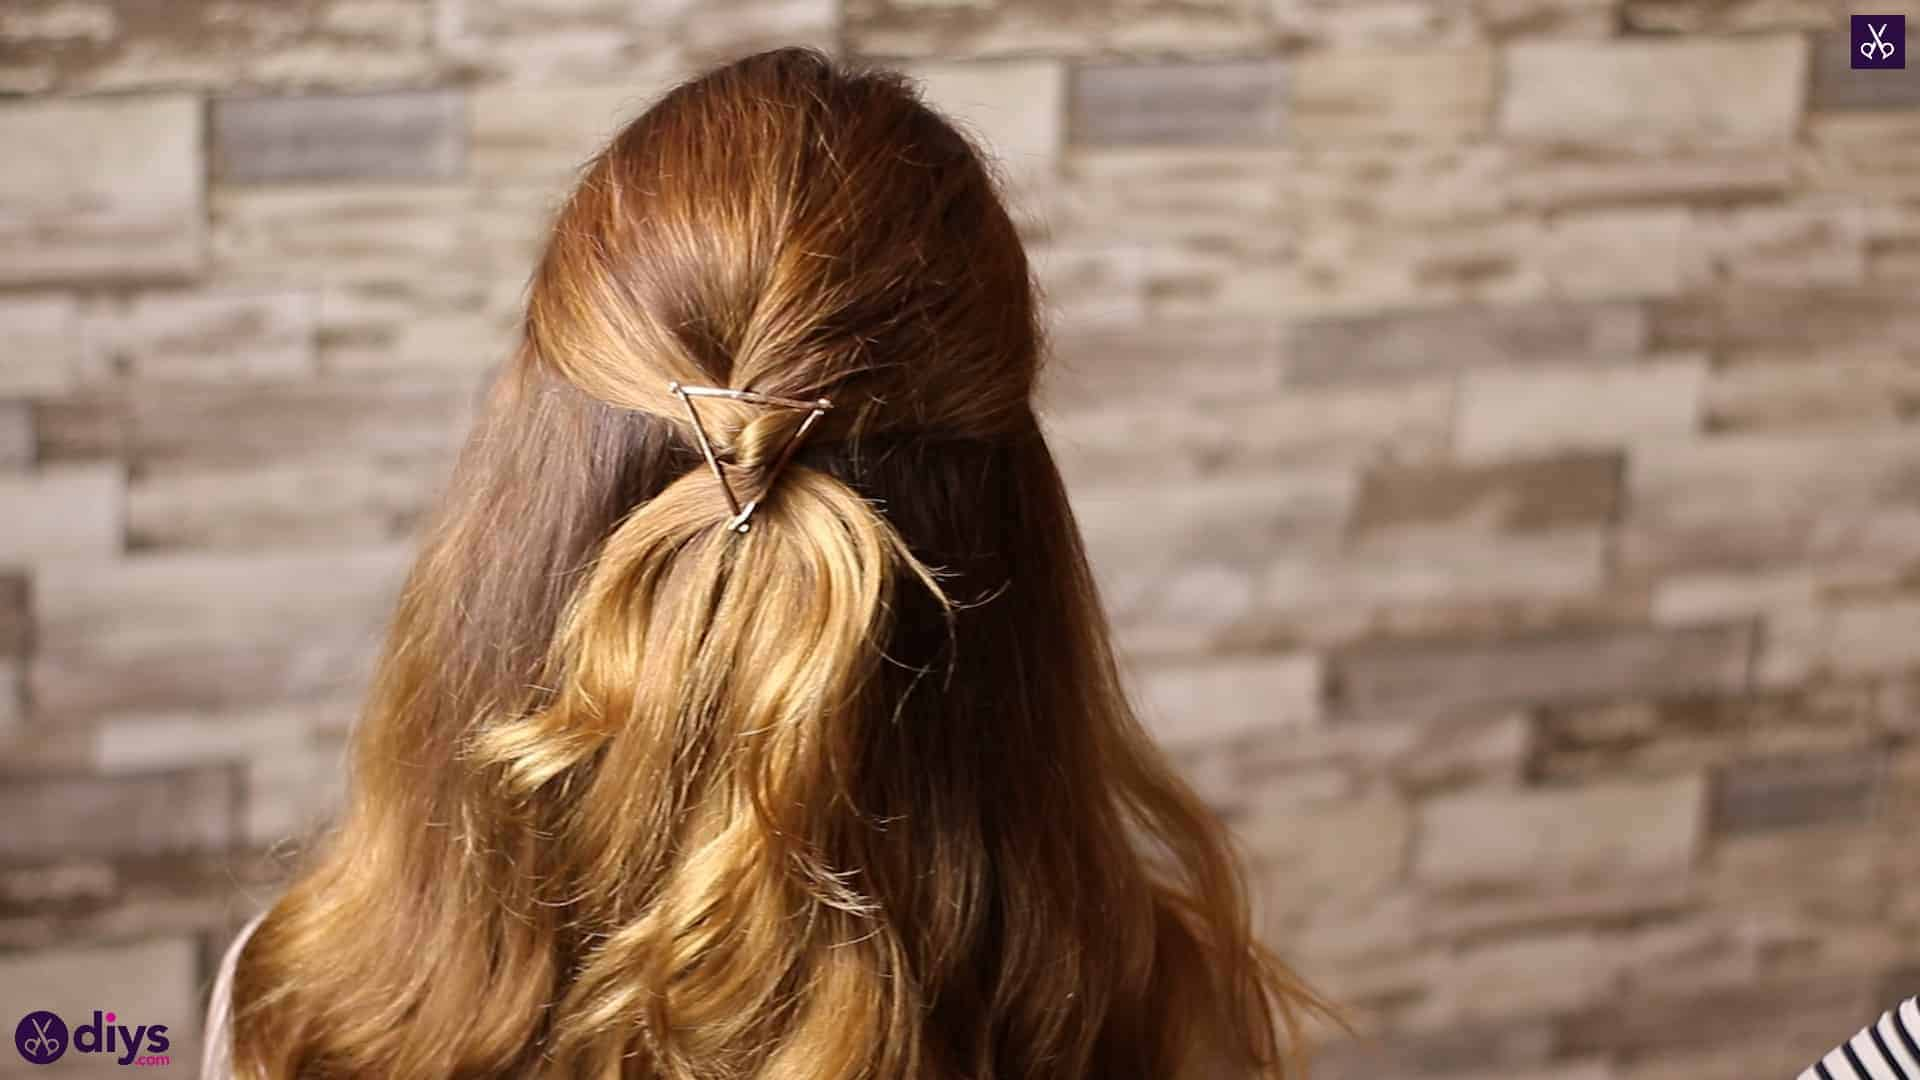 Updo hairstyle for wavy hair 1